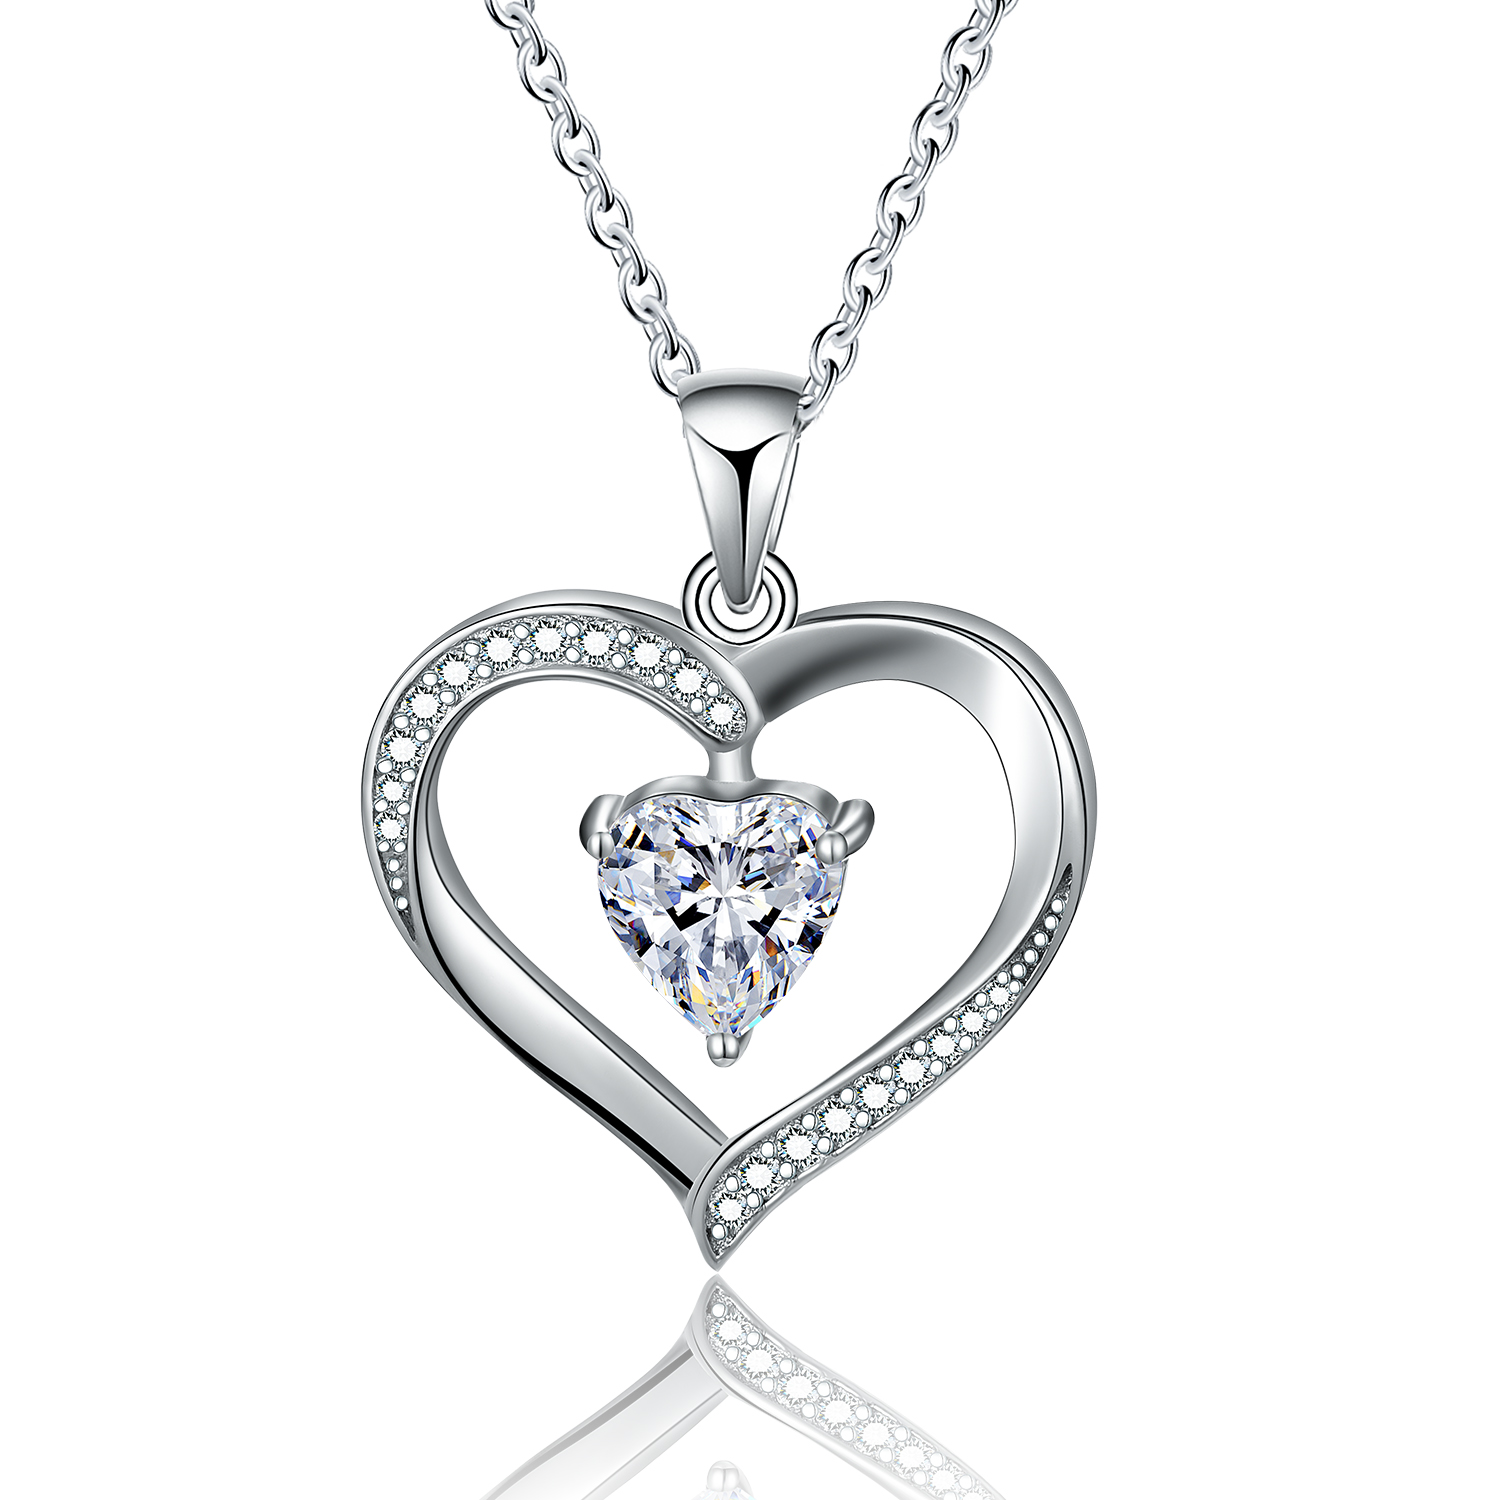 2019 <strong>fashion</strong> 925 sterling silver cubic zirconia heart necklace